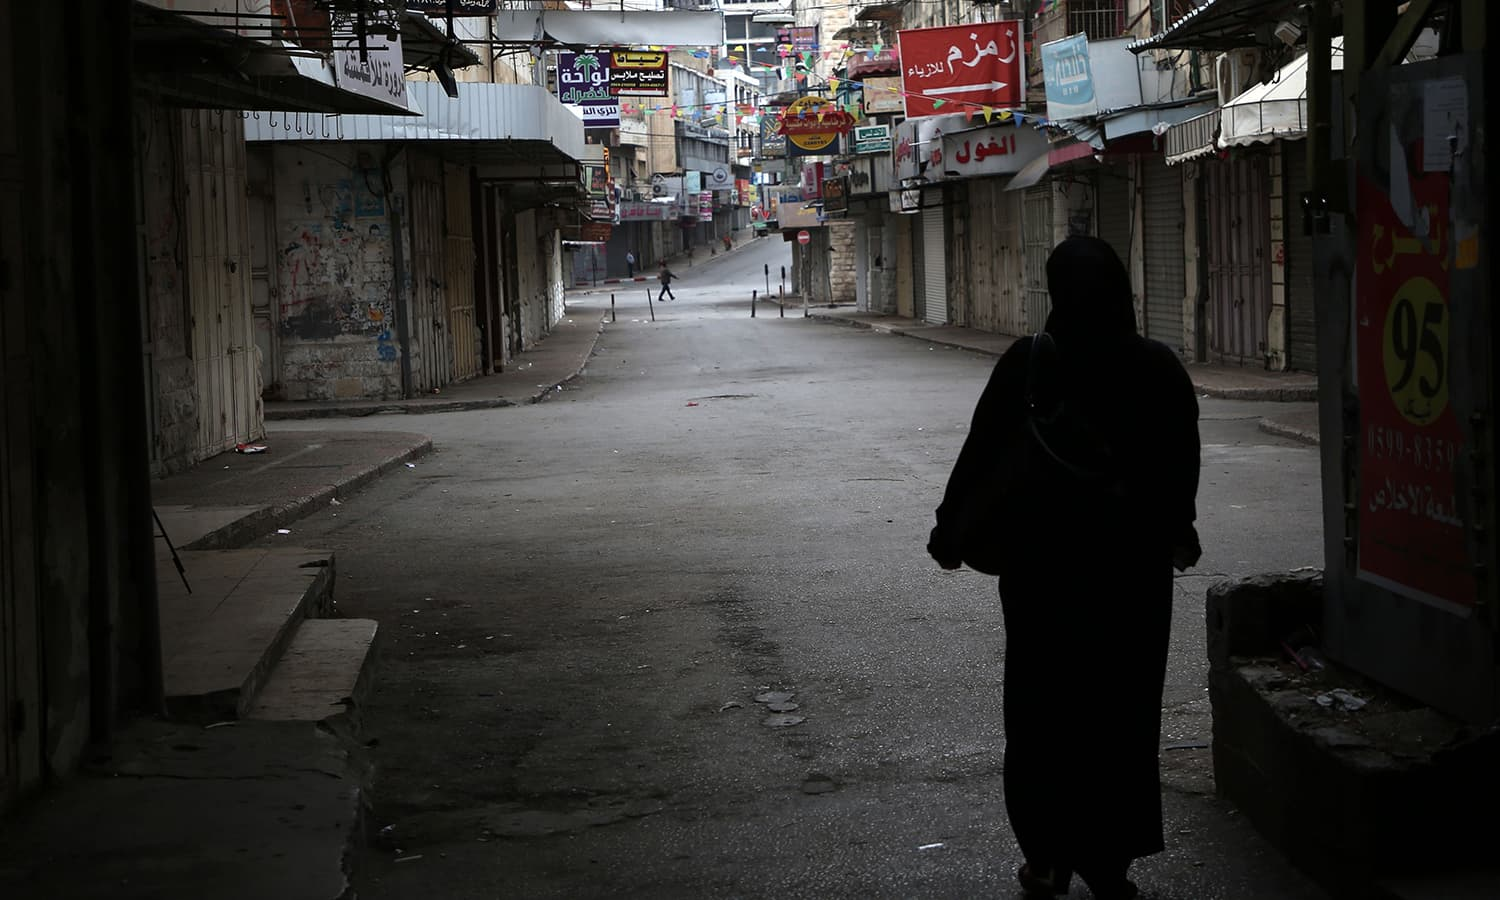 A Palestinian woman walks along an empty street in the Israeli occupied West Bank city of Nablus. — AFP